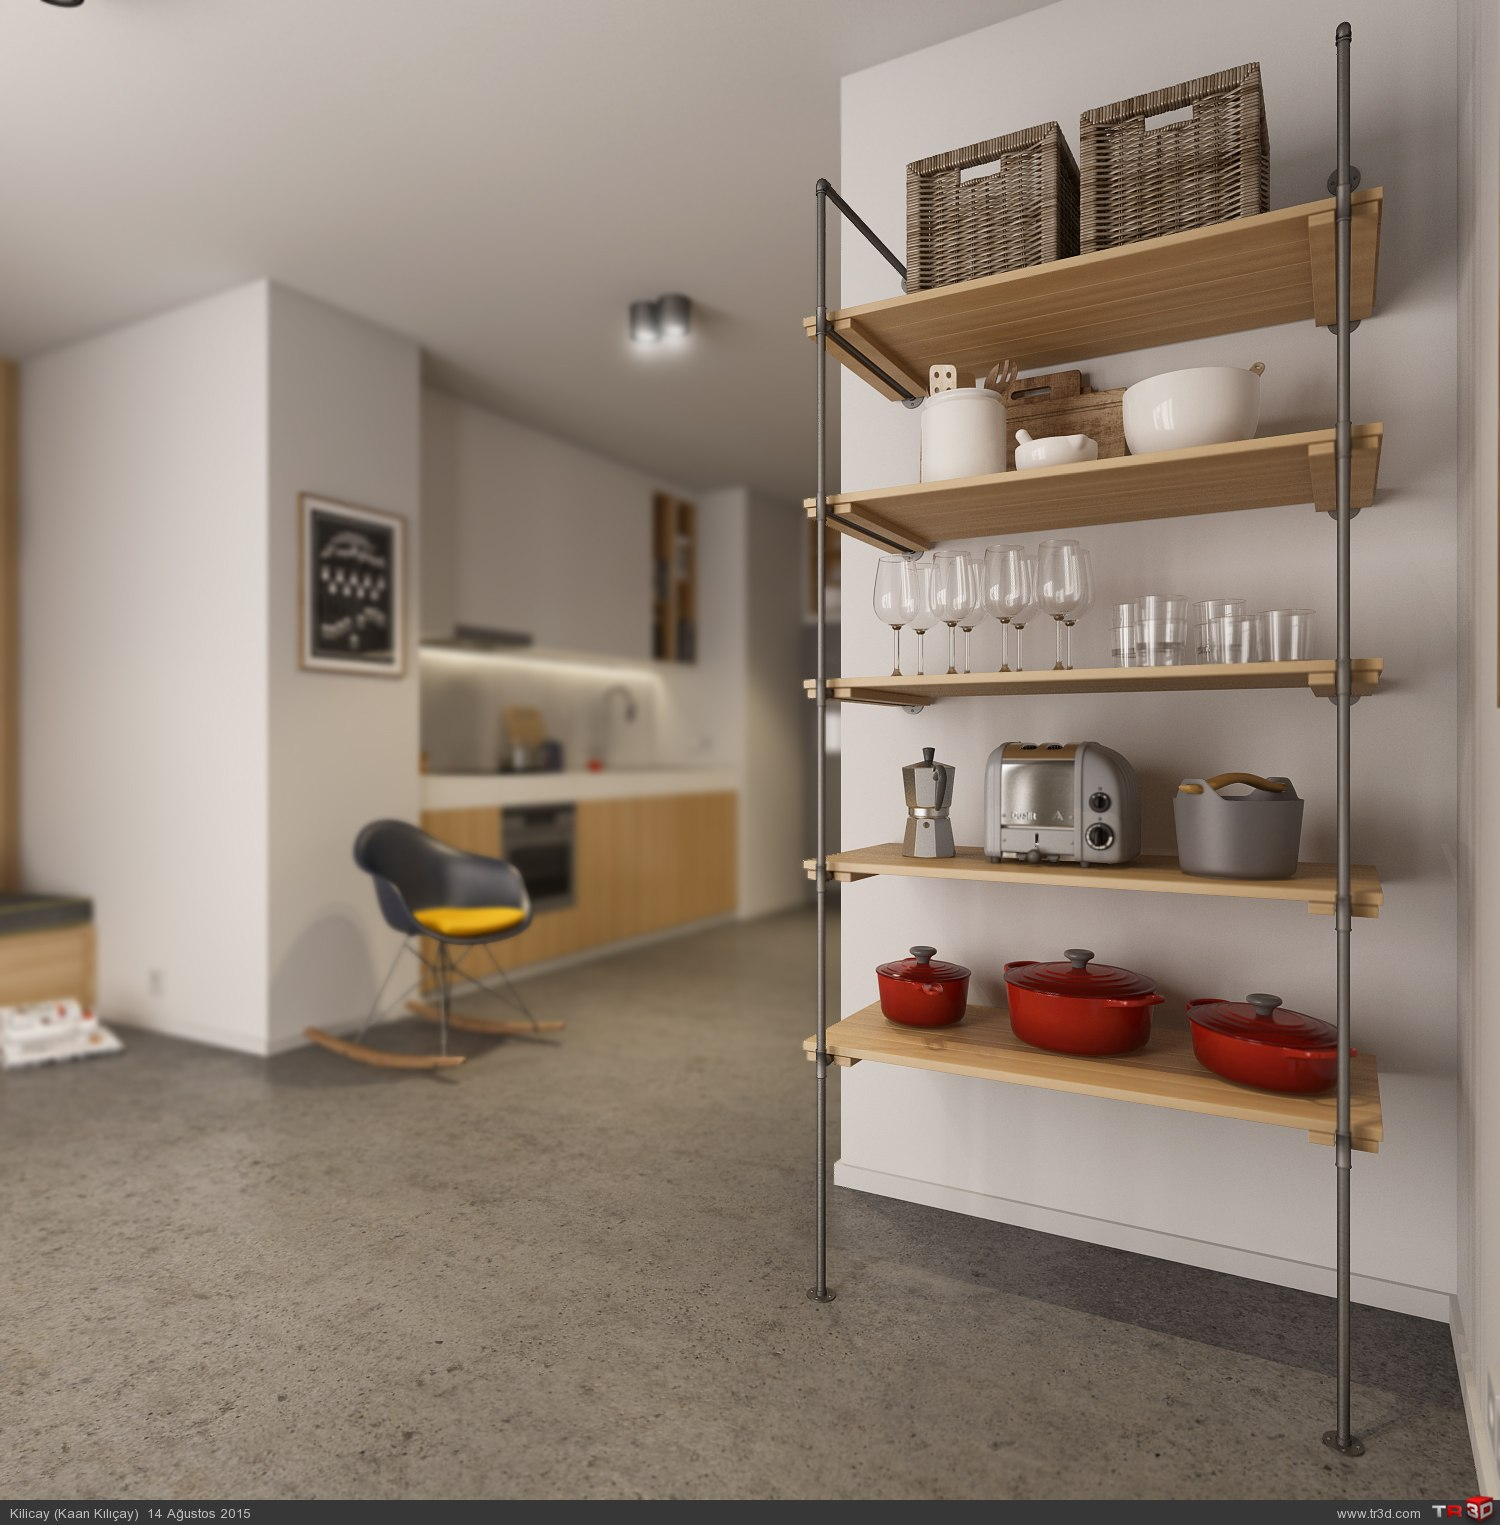 Kitchen - CGI 1